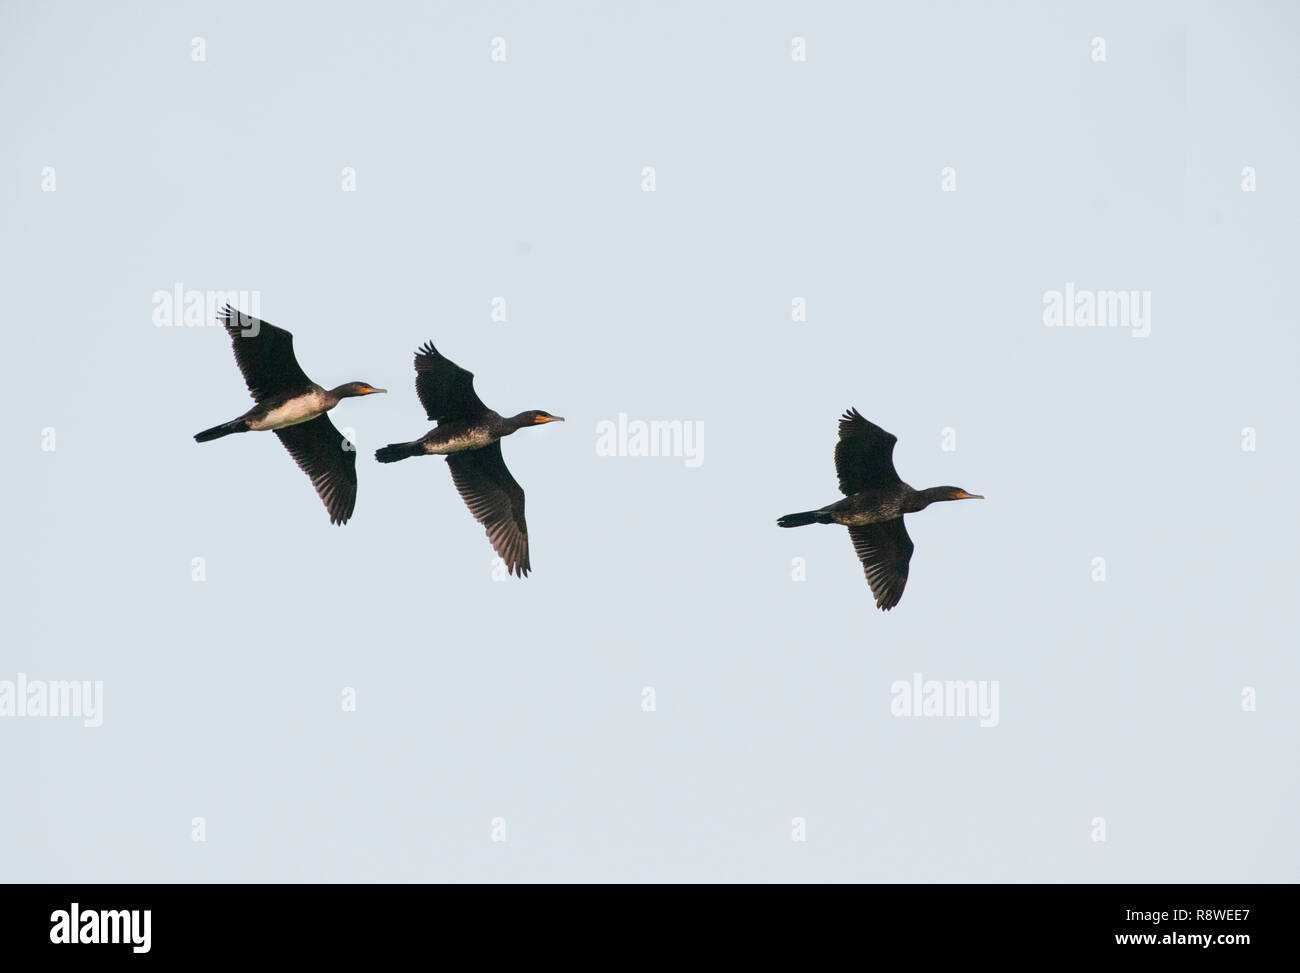 group of Great Cormorant, Phalacrocorax carbo, in flight over Brent Reservoir, London, United Kingdom Stock Photo